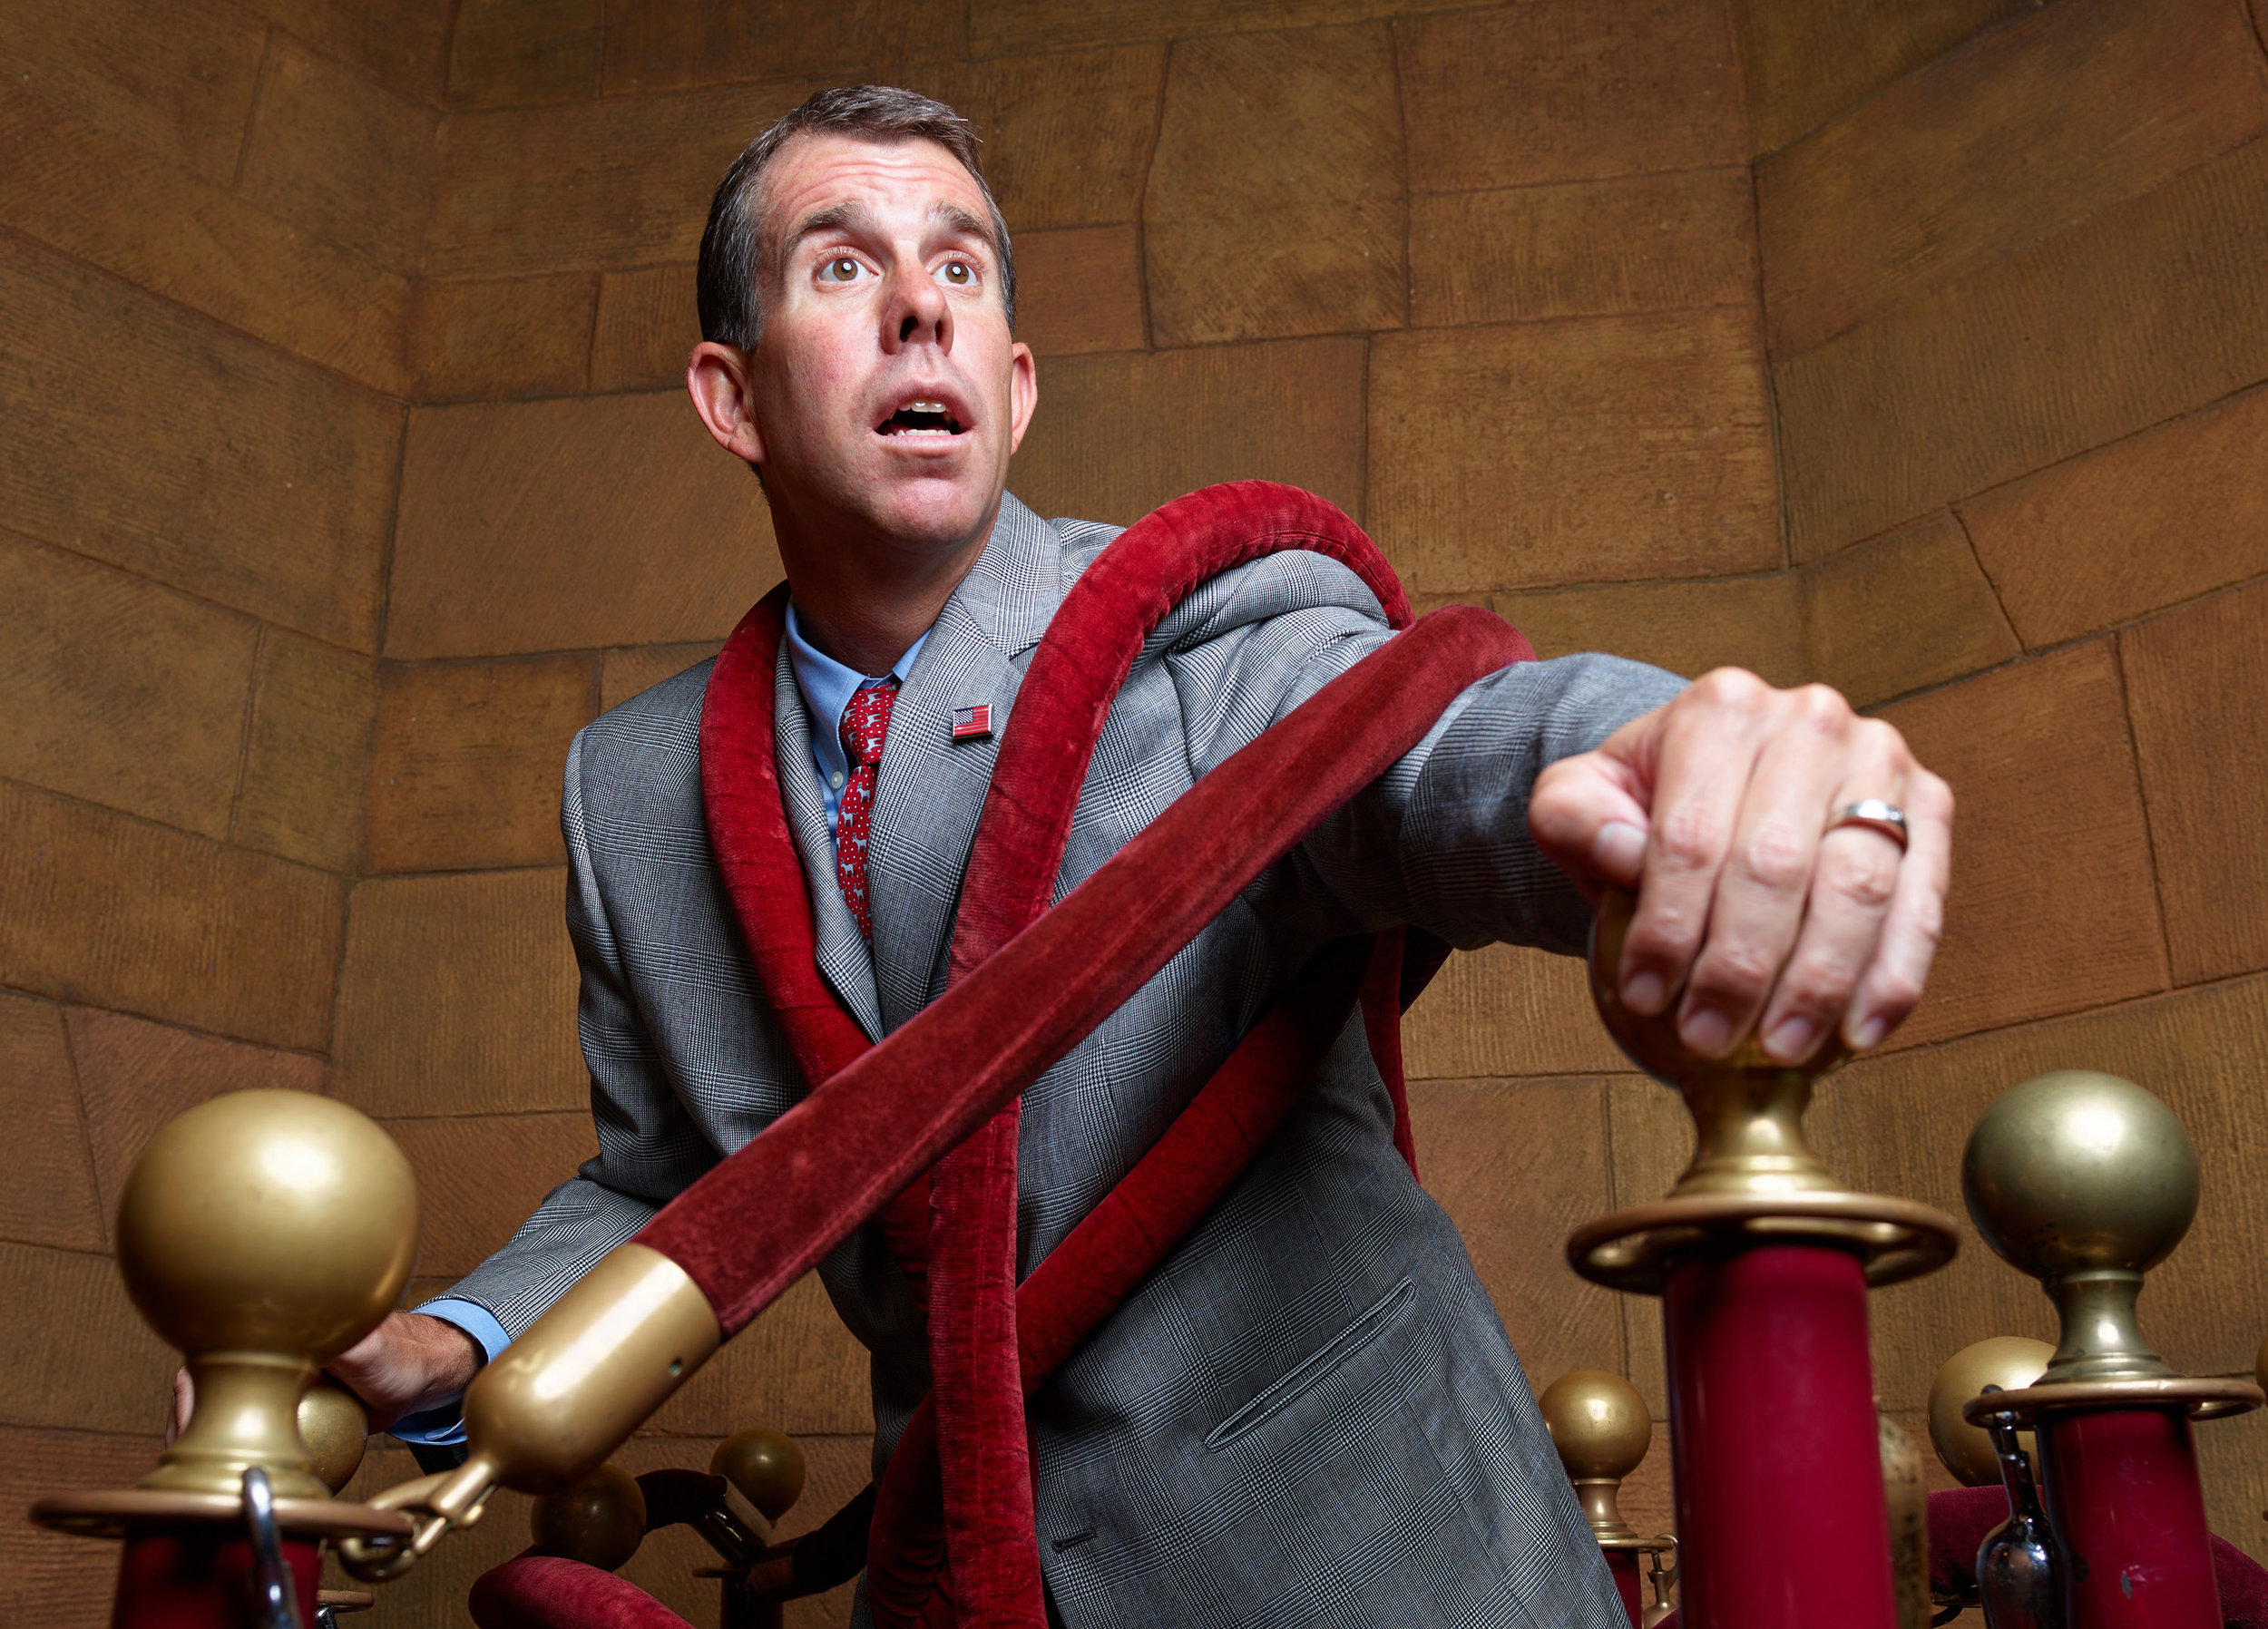 Jamie Bendall : Lawyer, Comedian, & co-owner of The Punchline Comedy Club